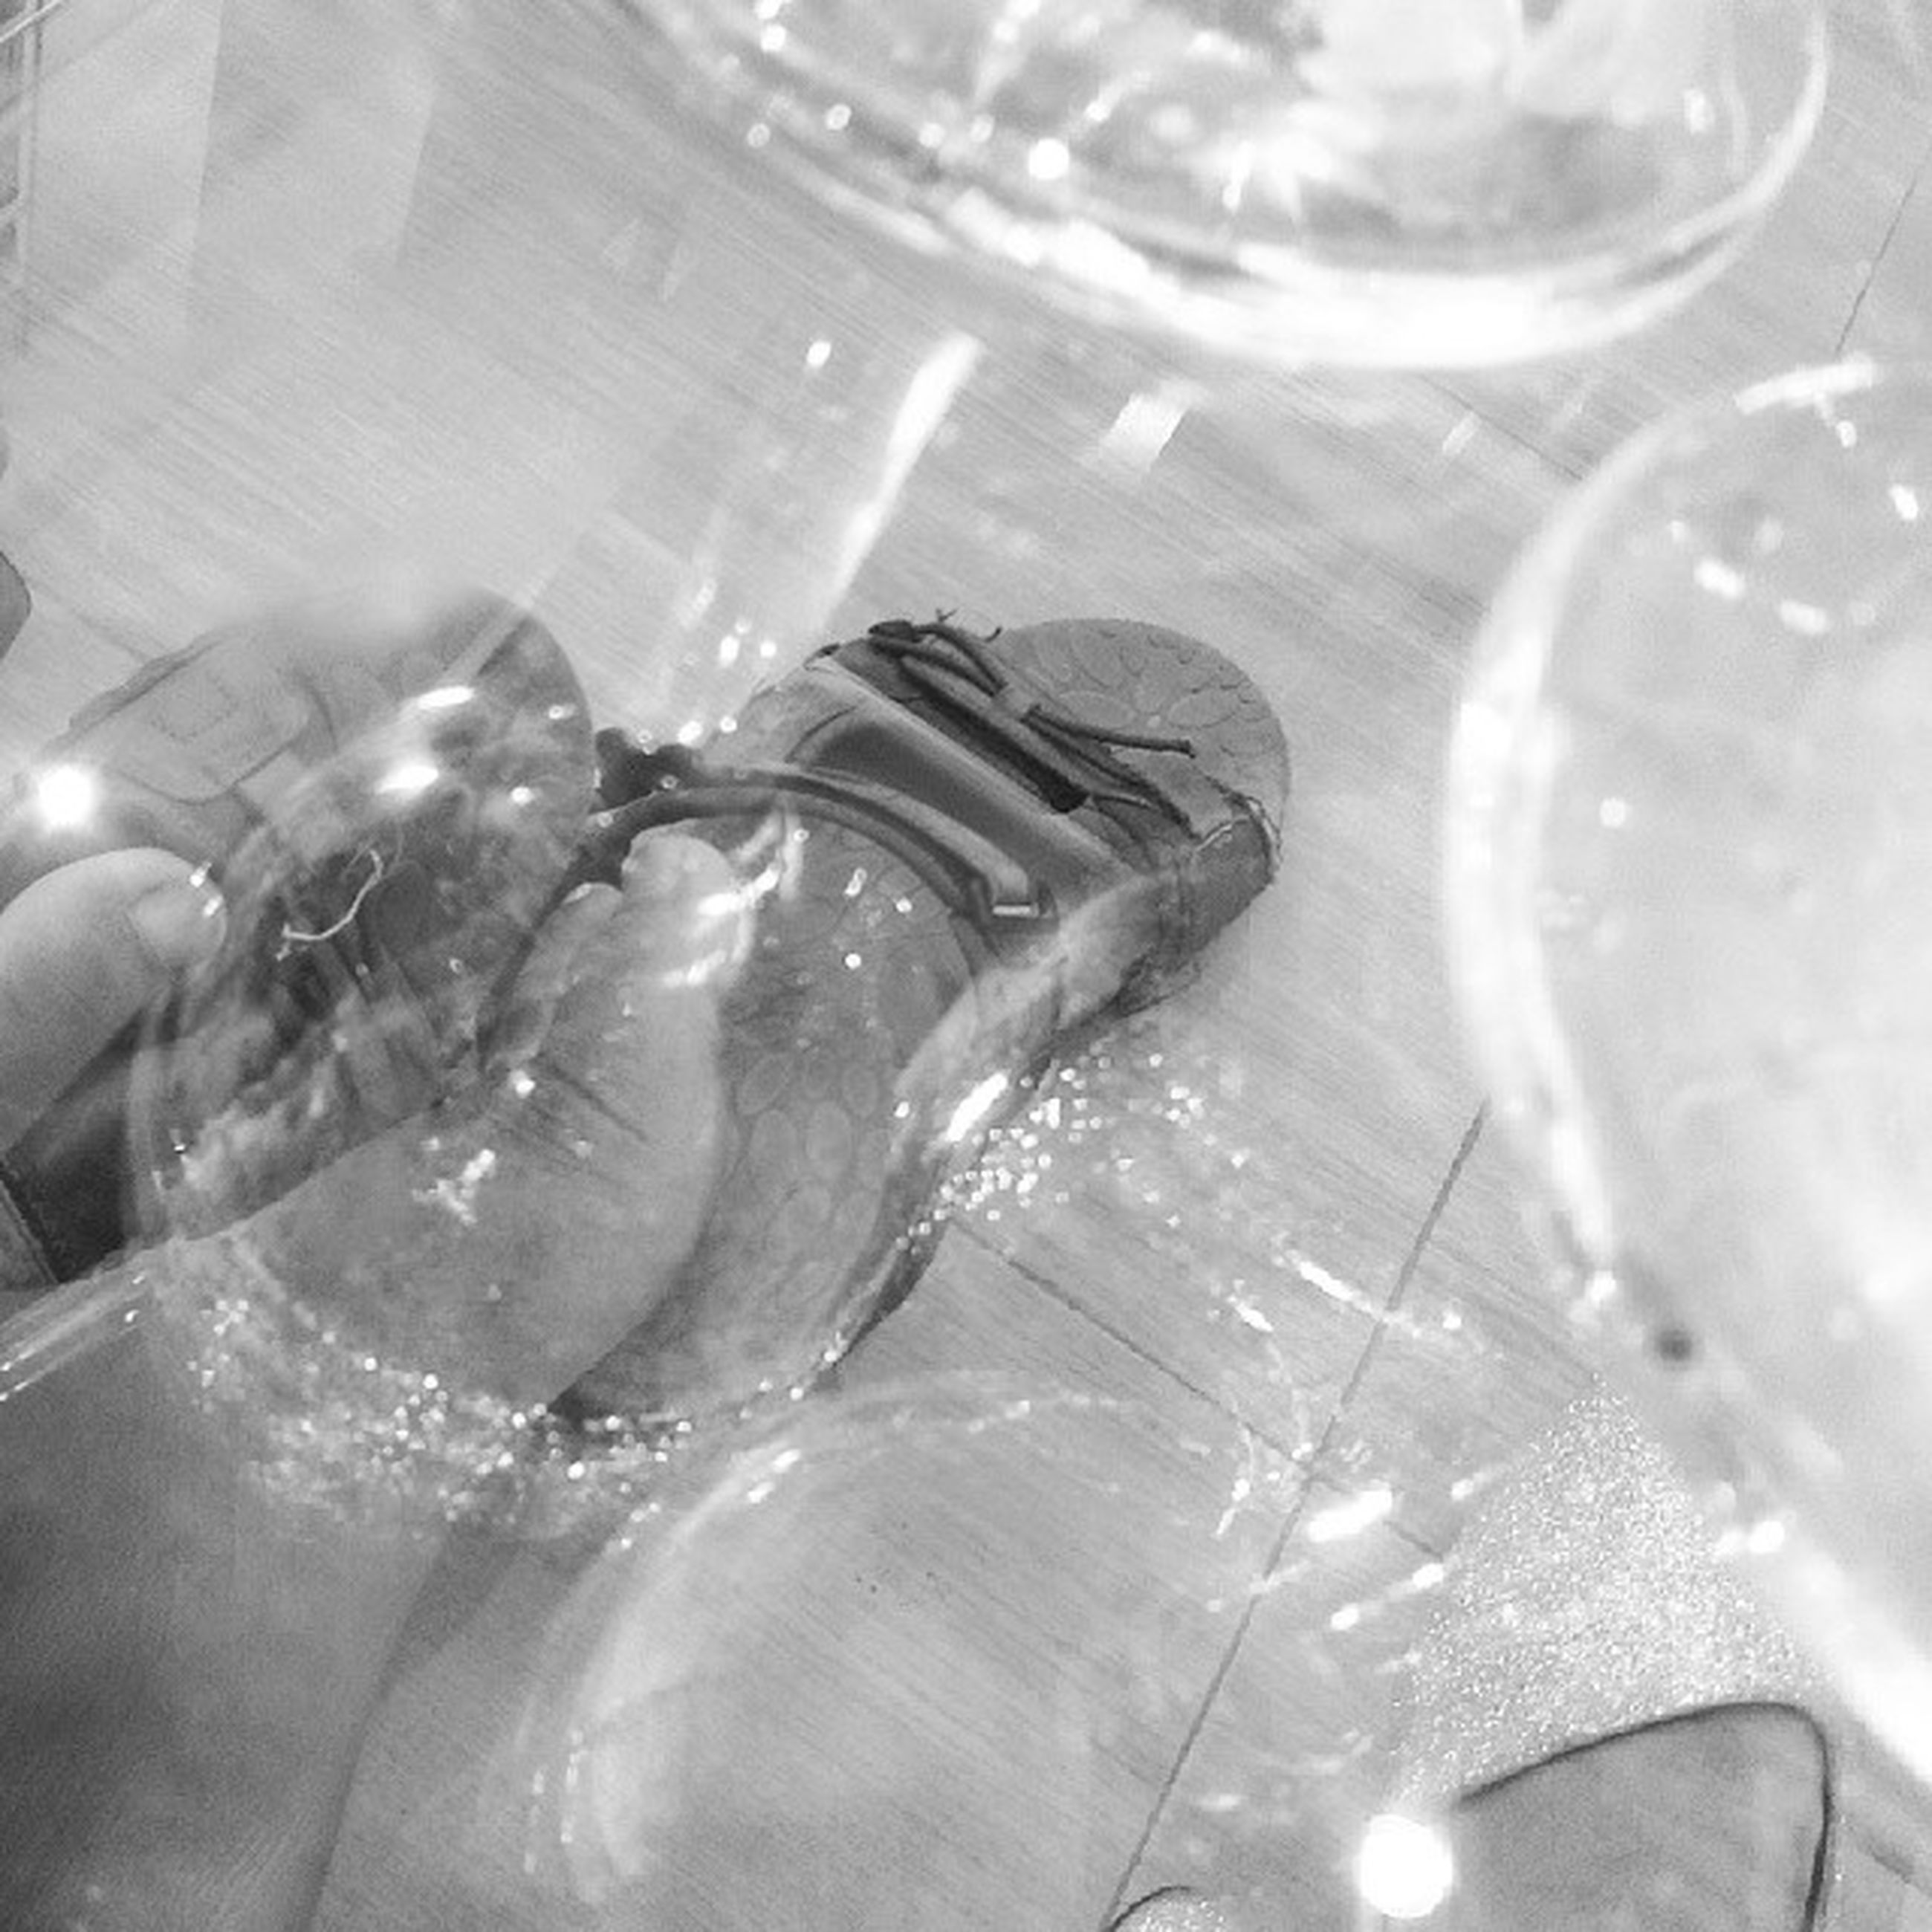 indoors, lifestyles, glass - material, transparent, leisure activity, person, high angle view, refreshment, close-up, bubble, part of, water, drinking glass, men, unrecognizable person, drink